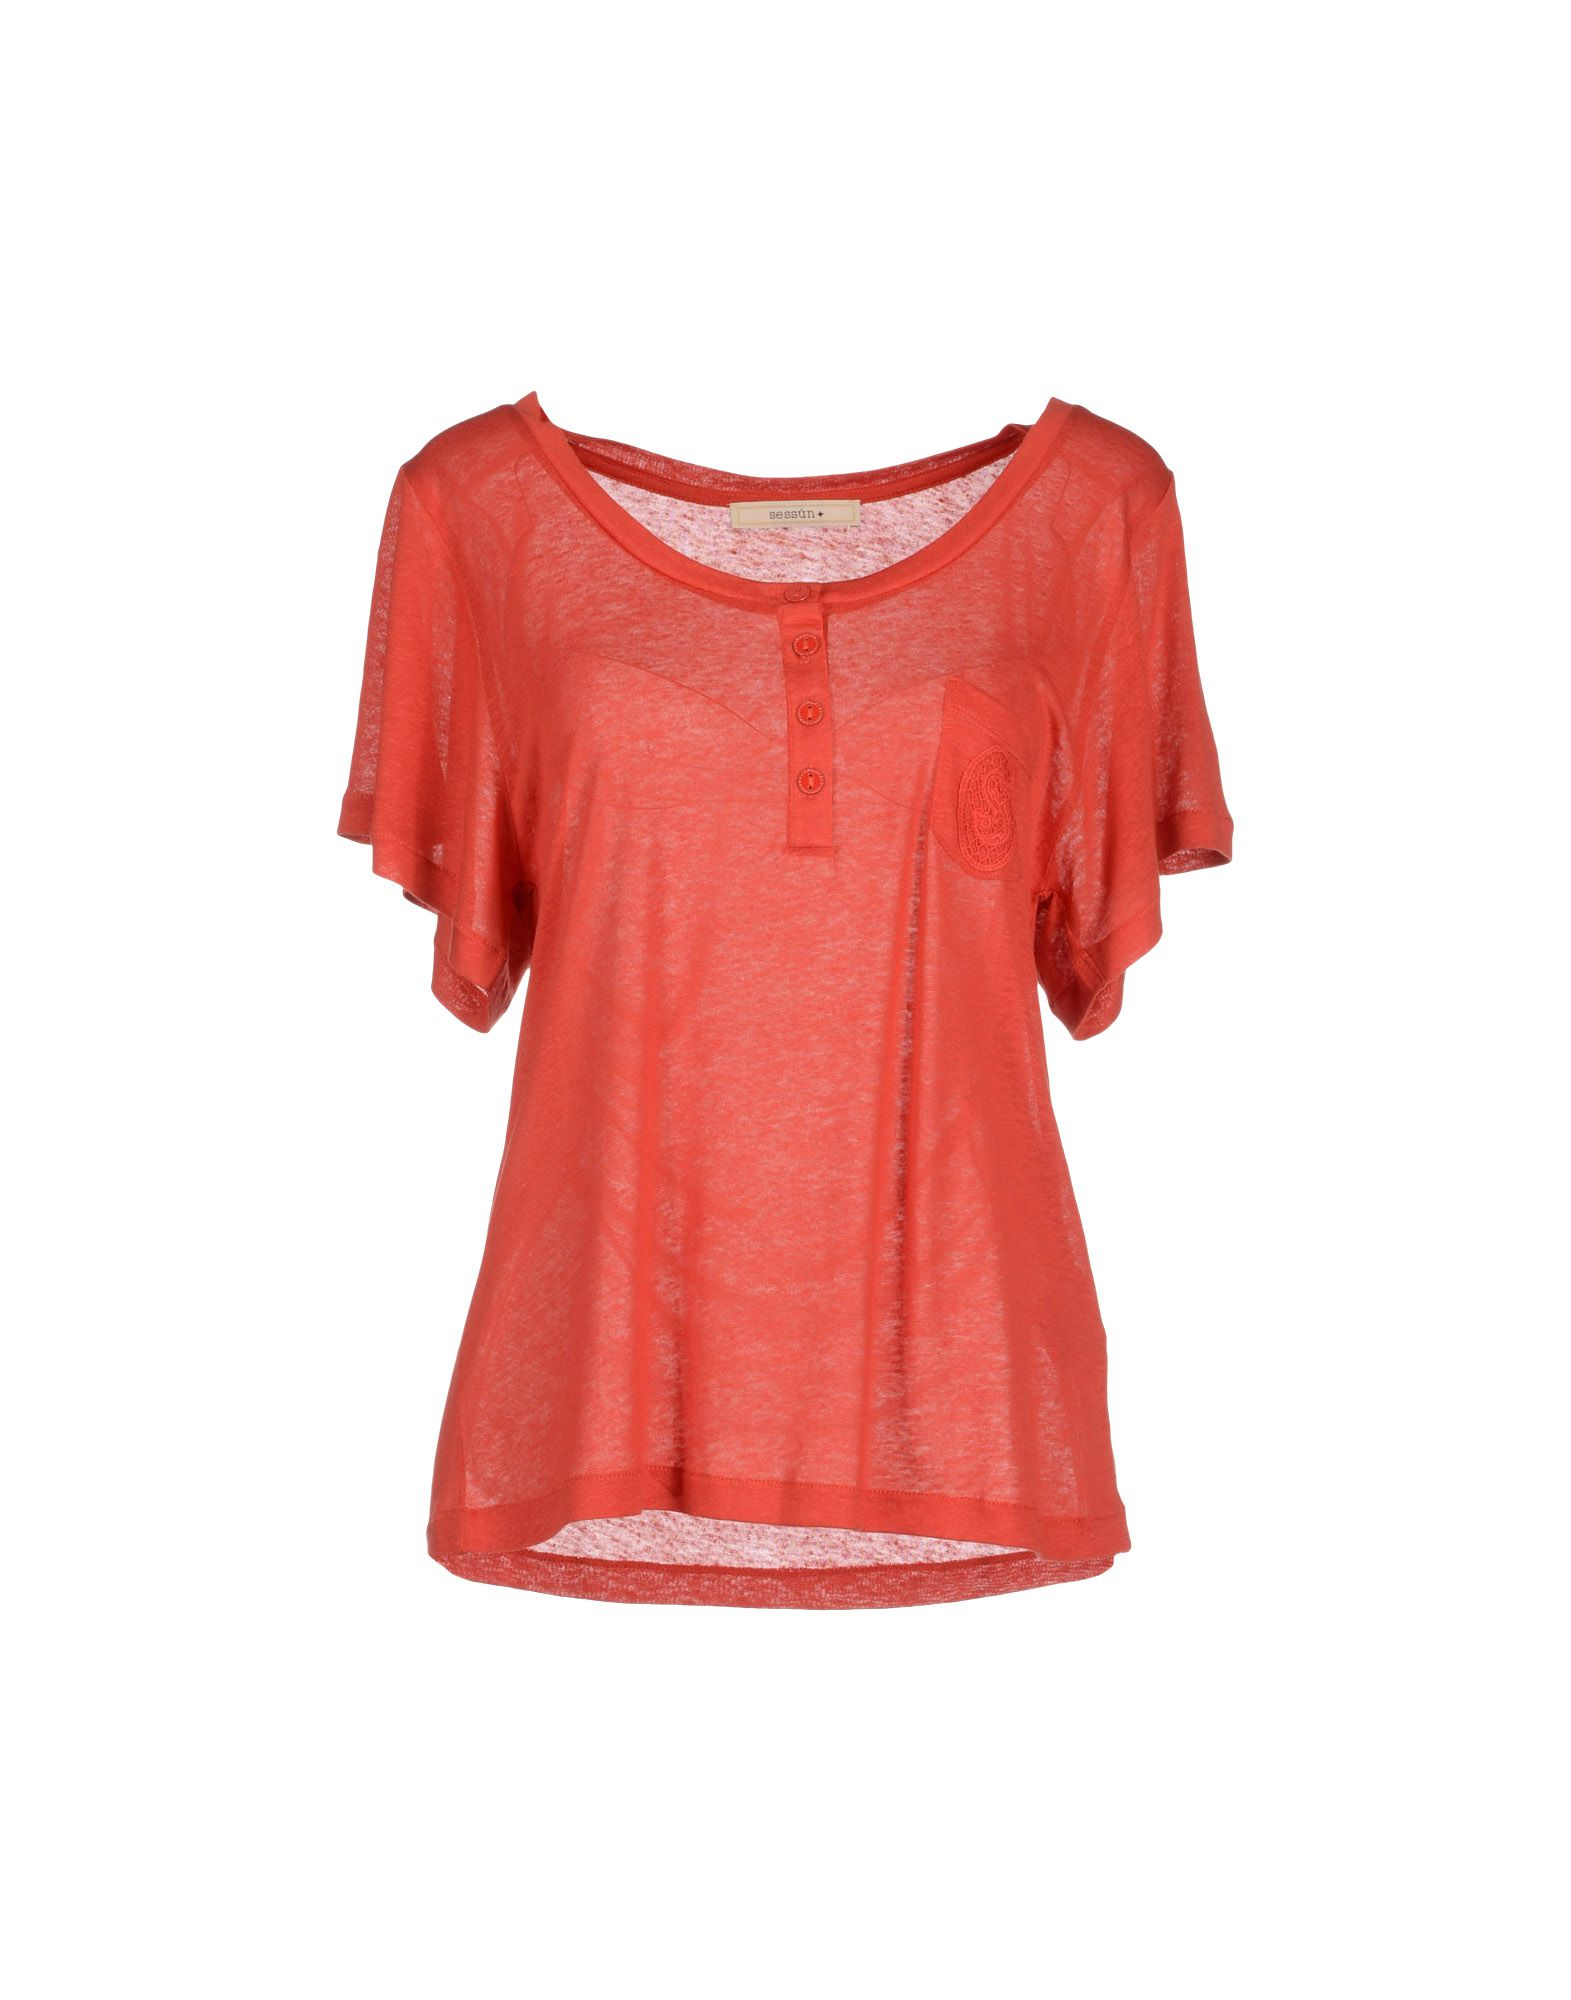 Womens Rust Colored Shirts